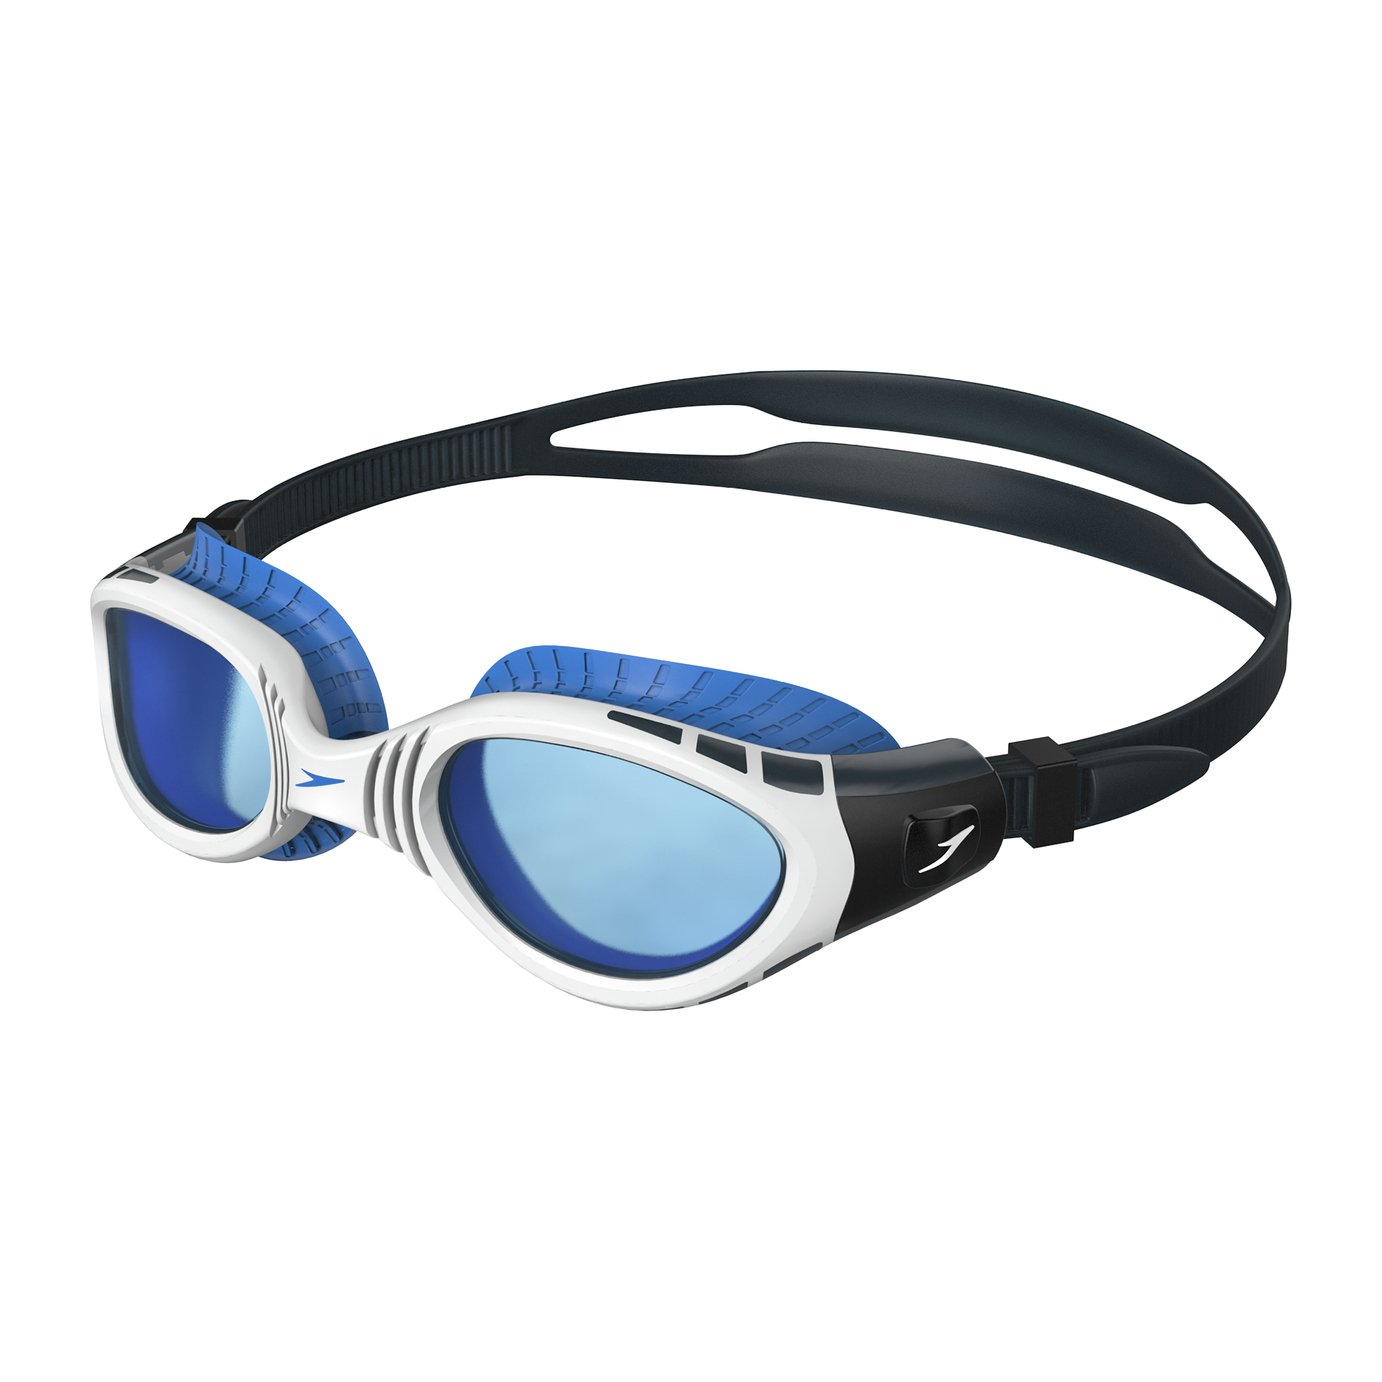 Speedo Adult Futura Biofuse Goggle - Clear/Clear. from Speedo